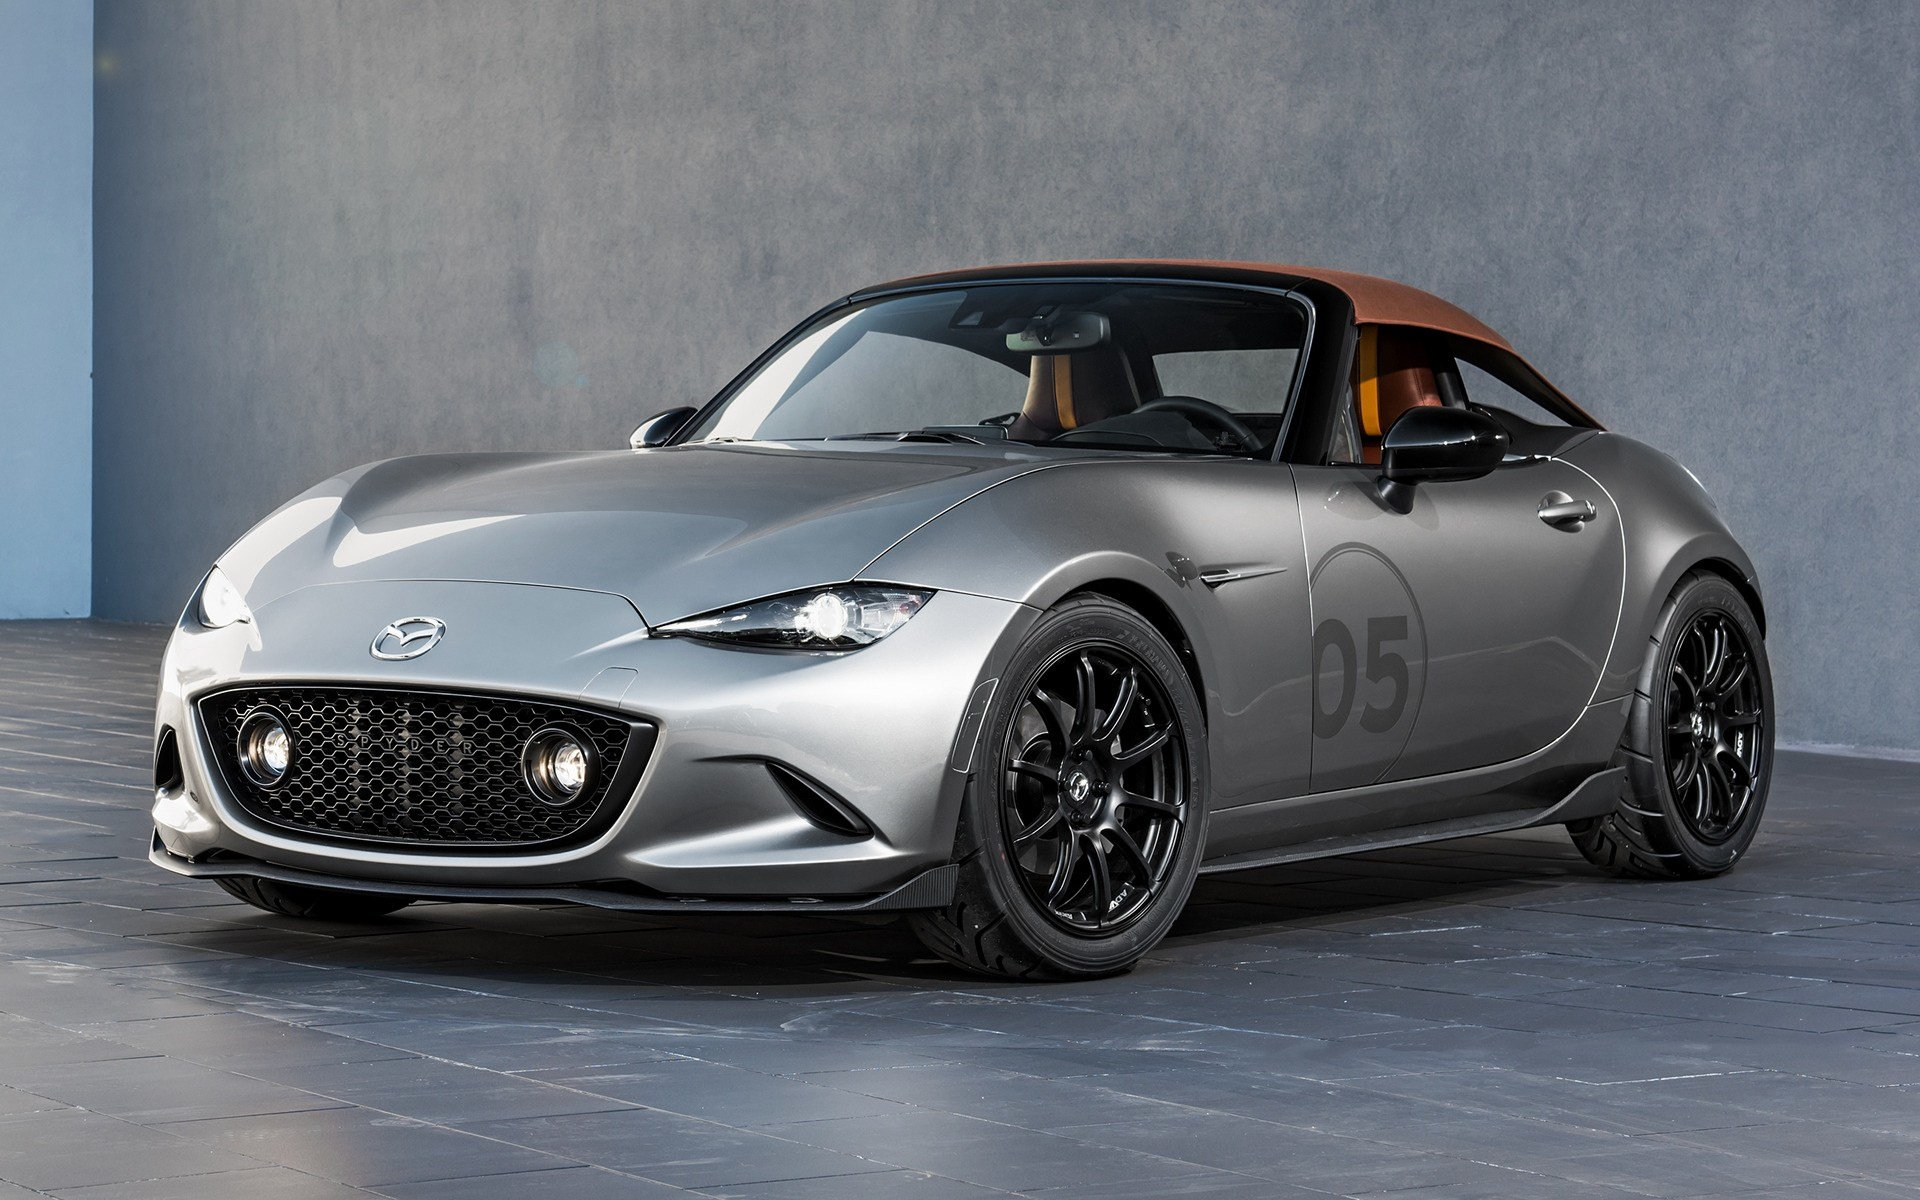 Latest Mazda Mx 5 Spyder Concept 2015 Wallpapers And Hd Images Free Download